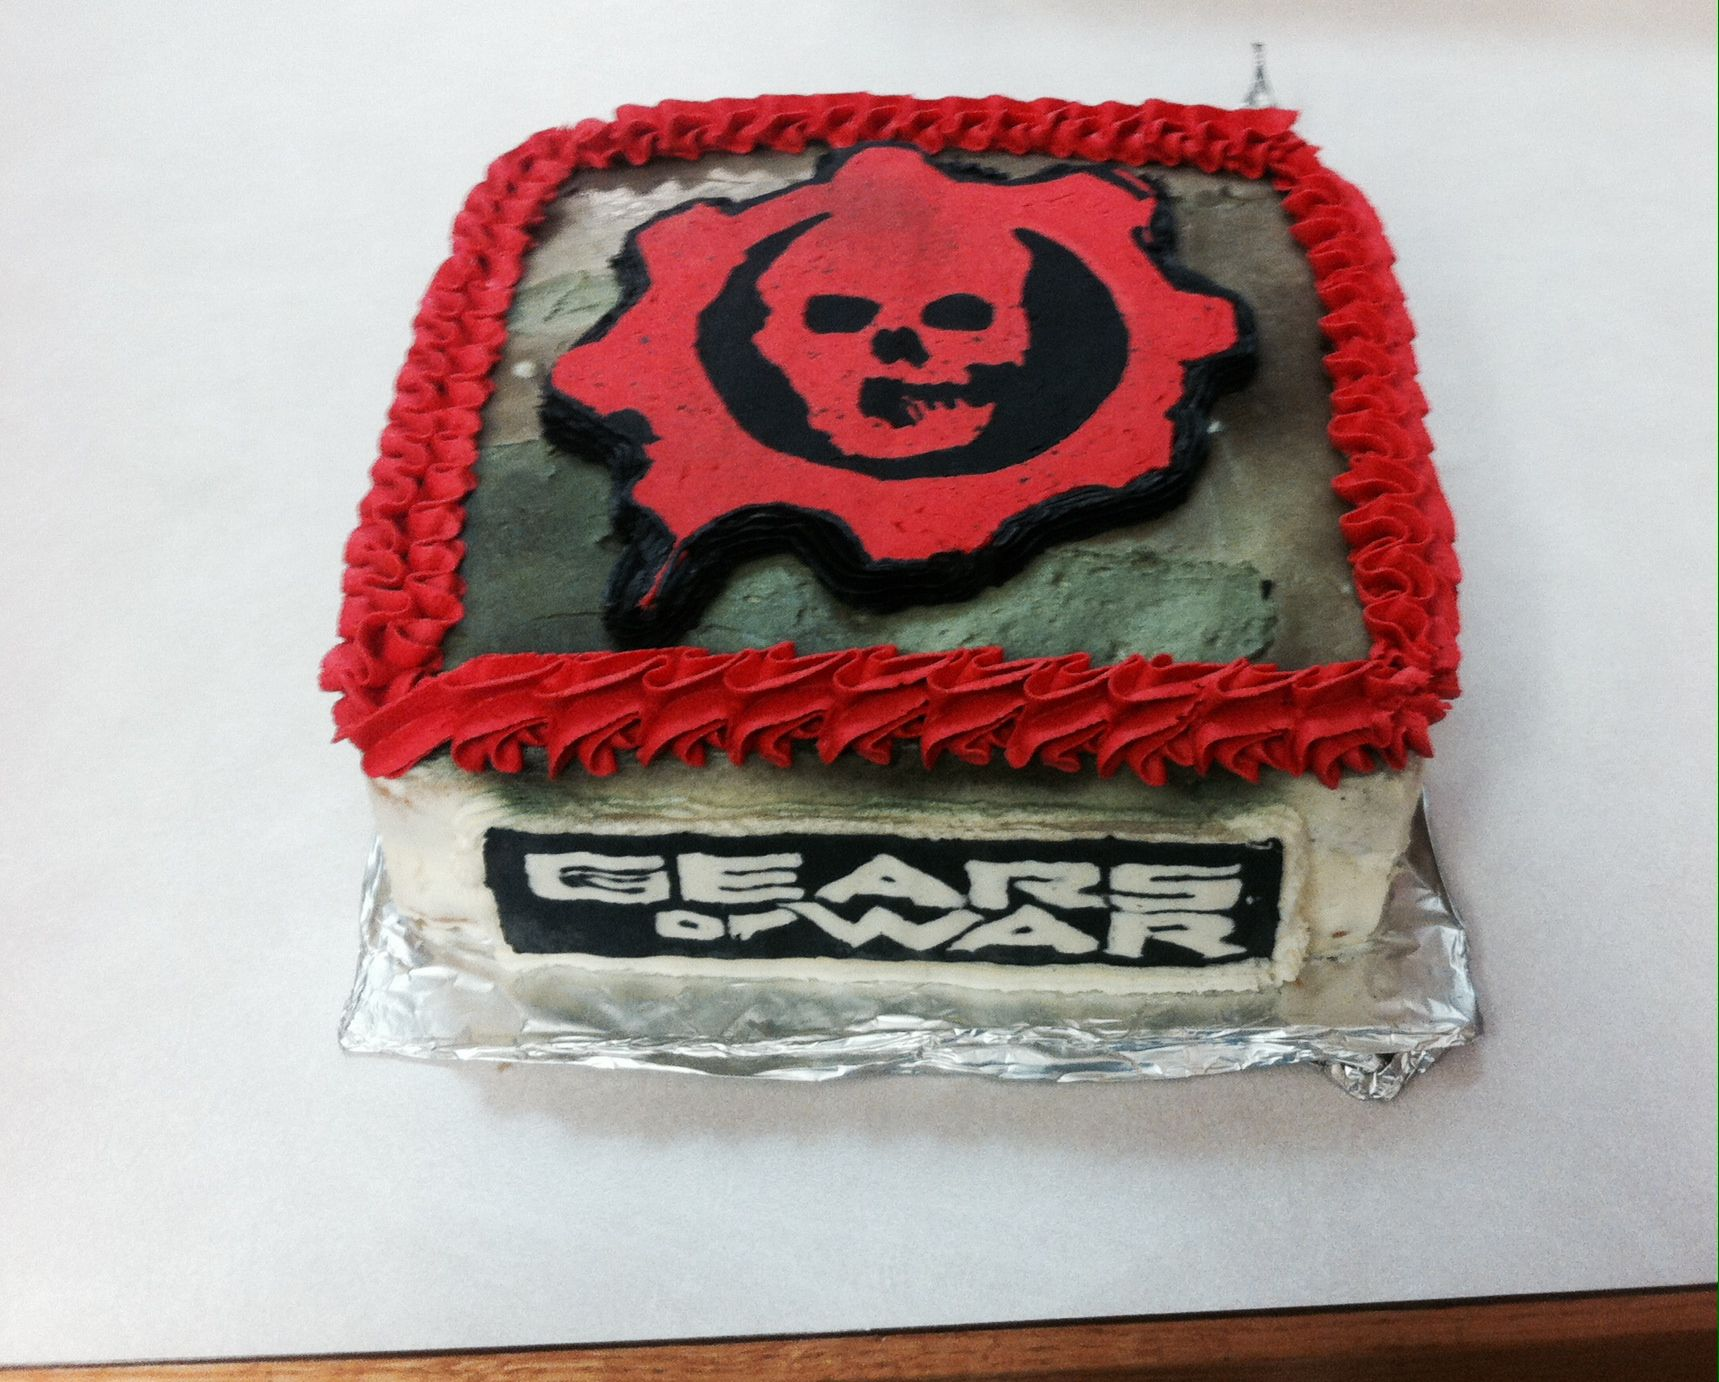 Gears of war cake recipe